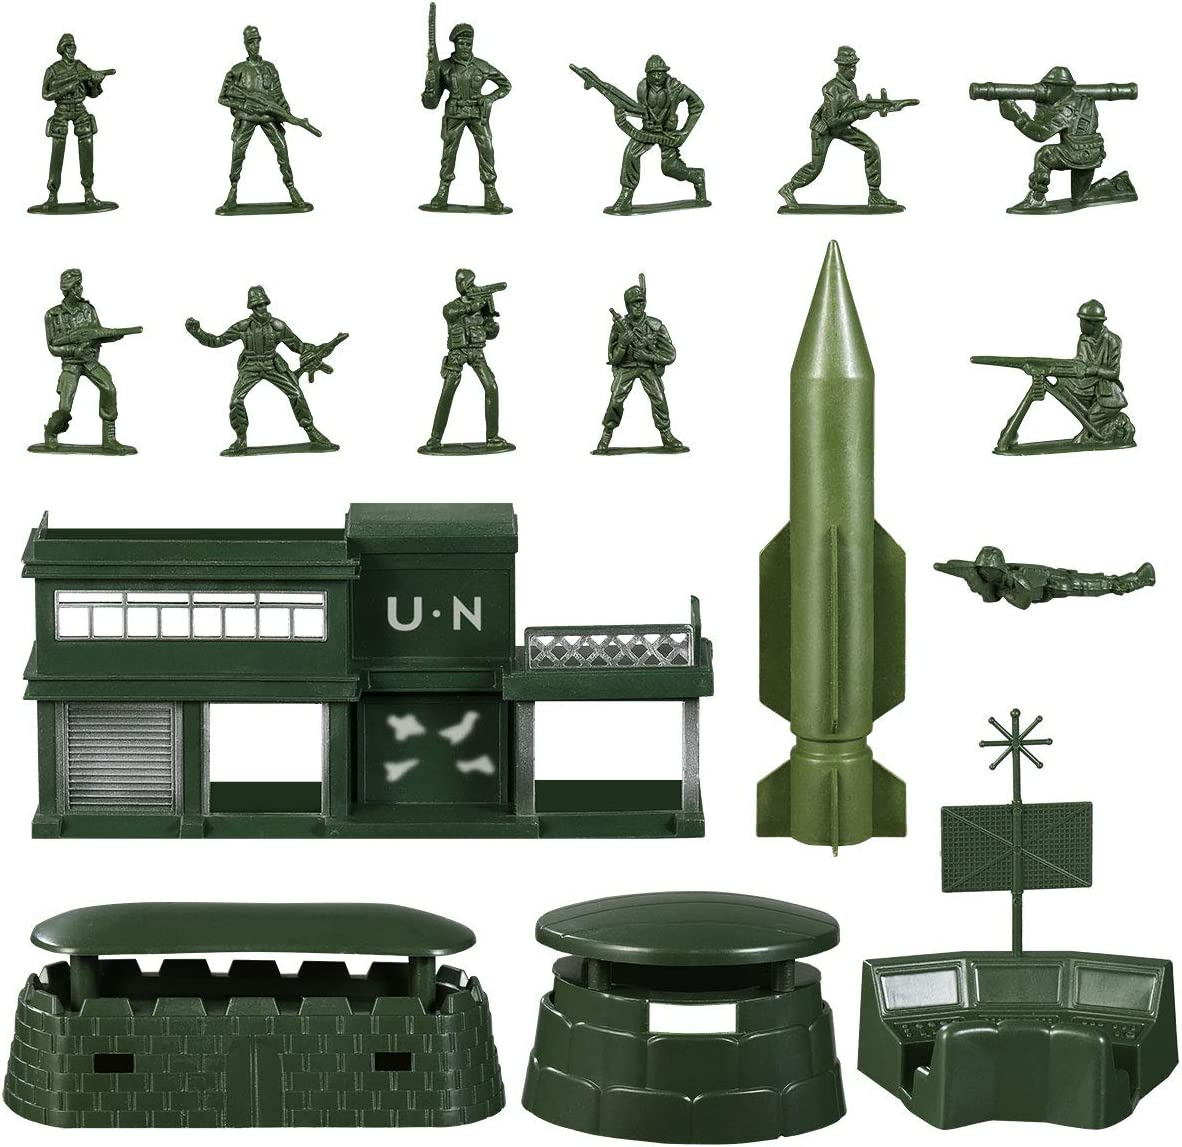 1 Set Military Sand Scene Model Kits Toy Army Accessories Toys for Birthday Gift